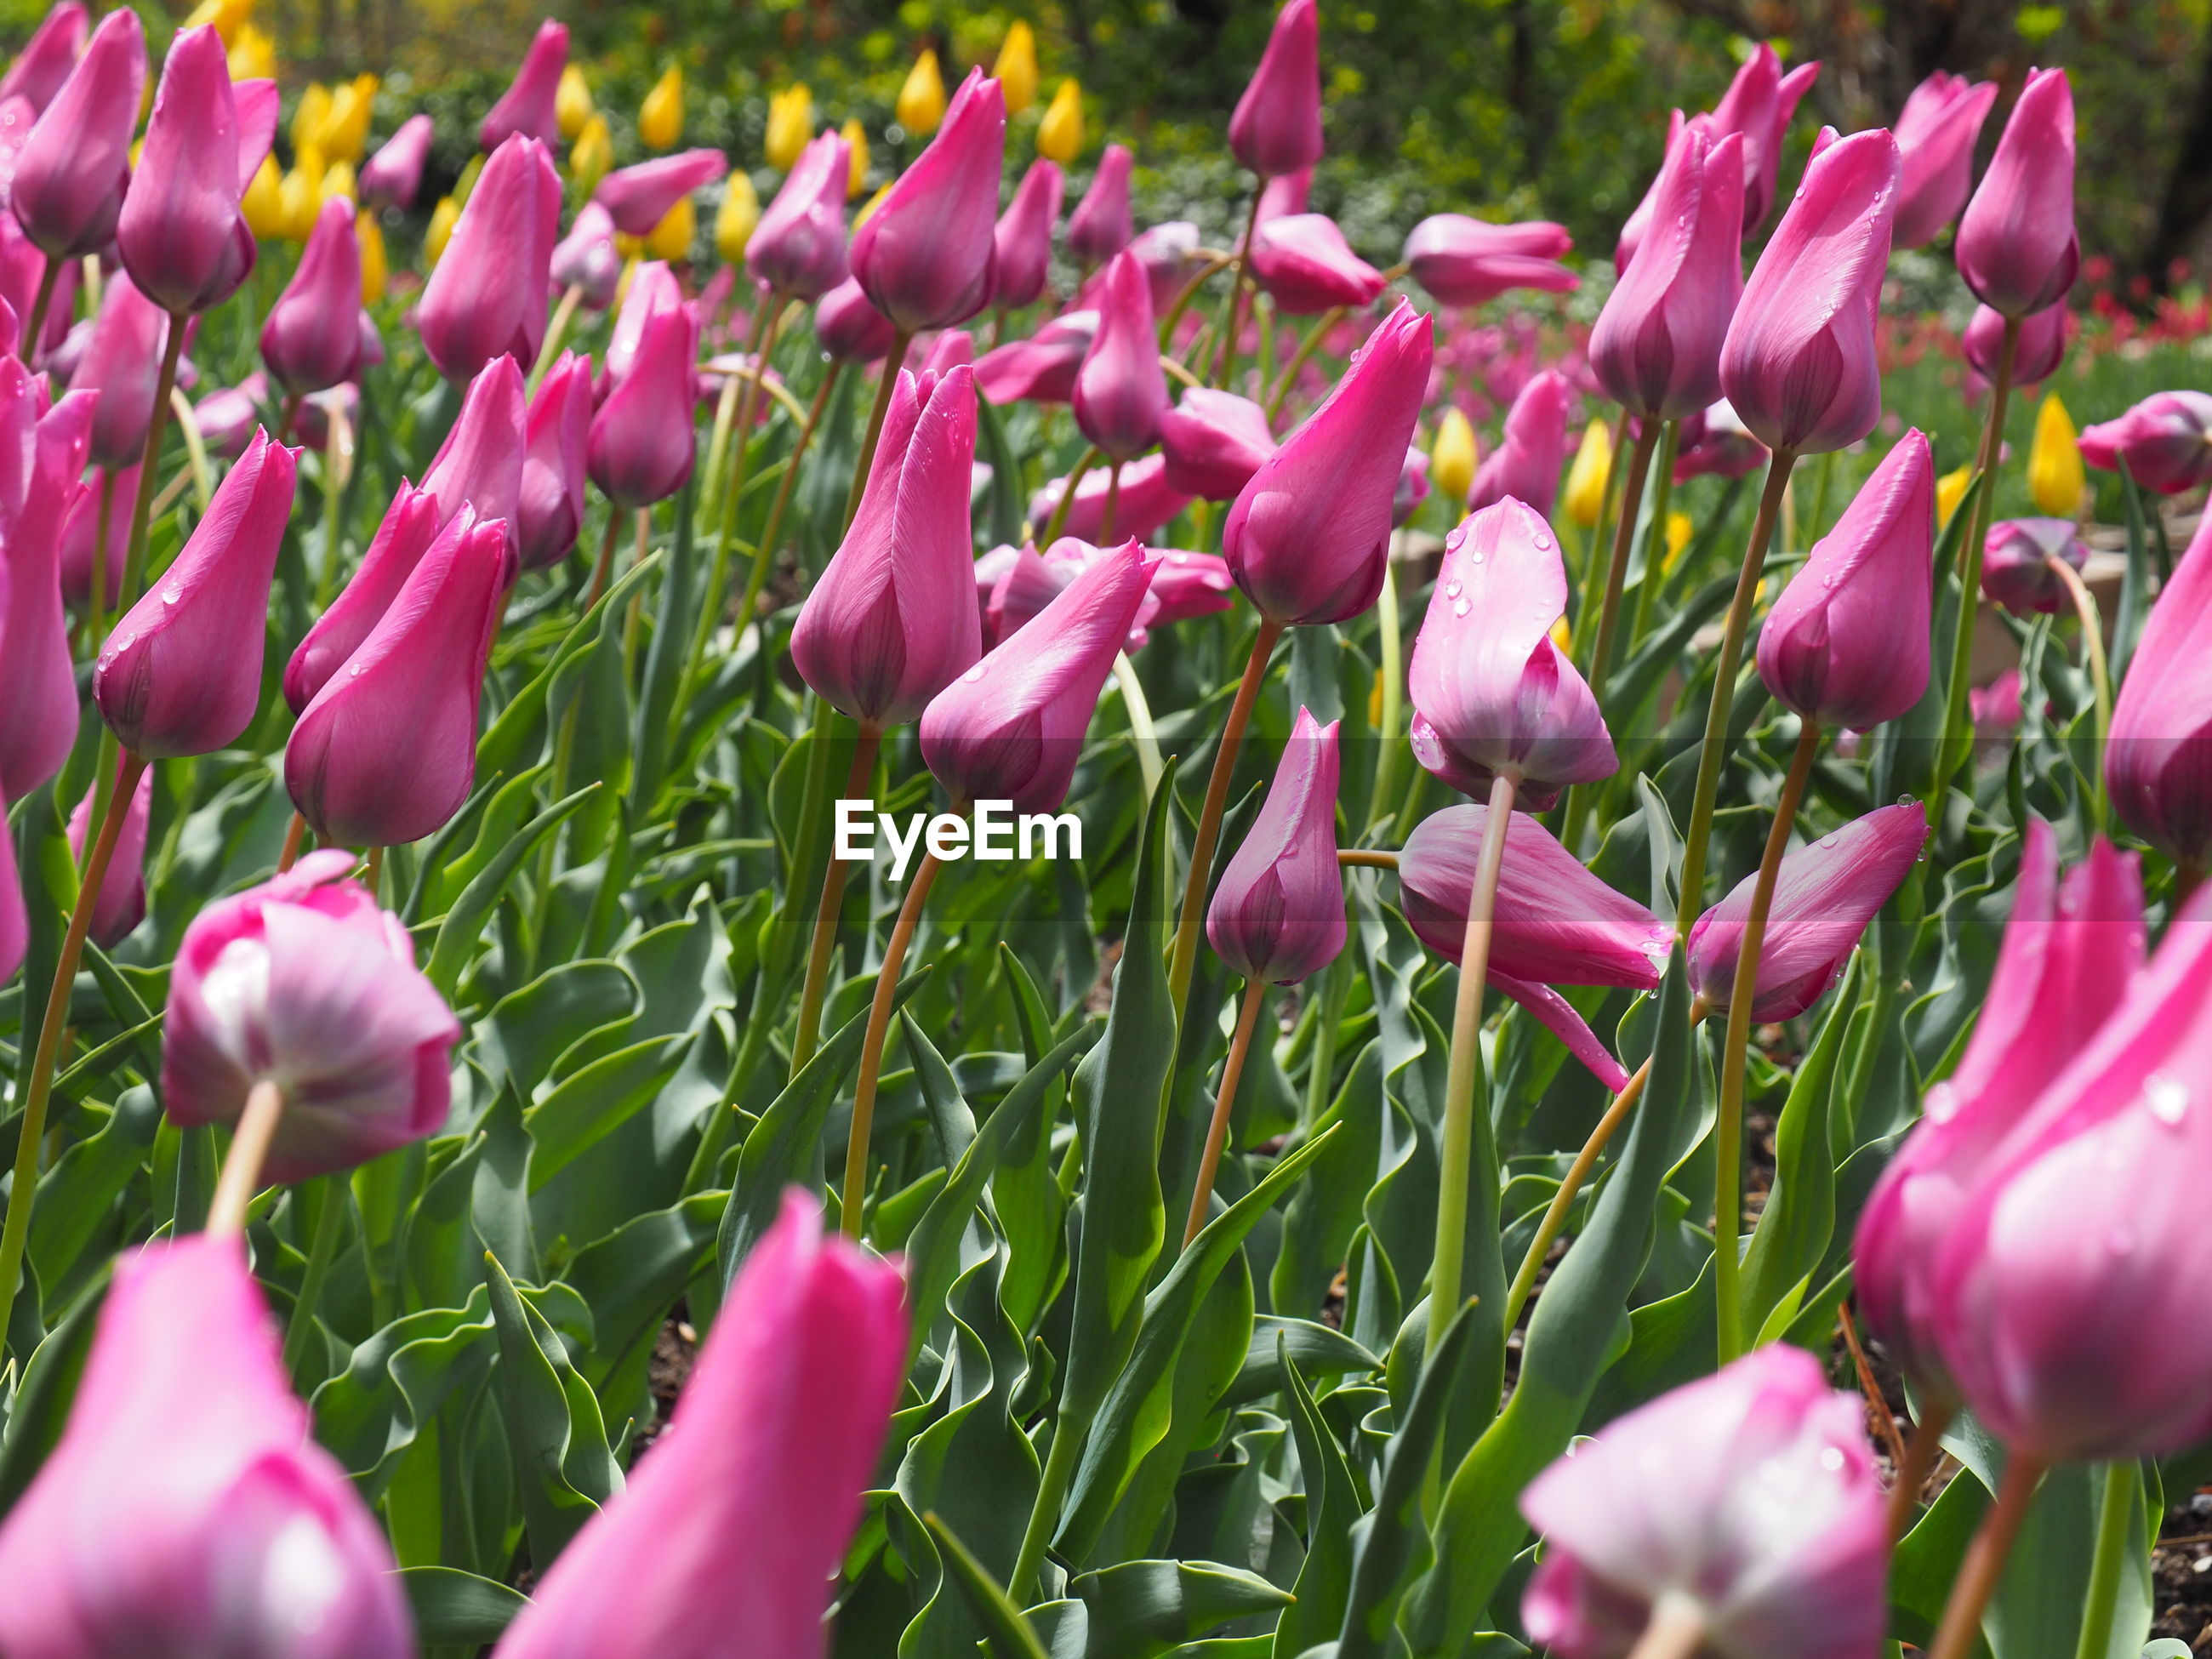 flower, flowering plant, plant, beauty in nature, freshness, pink color, vulnerability, growth, petal, fragility, close-up, selective focus, tulip, inflorescence, nature, flower head, day, no people, land, outdoors, purple